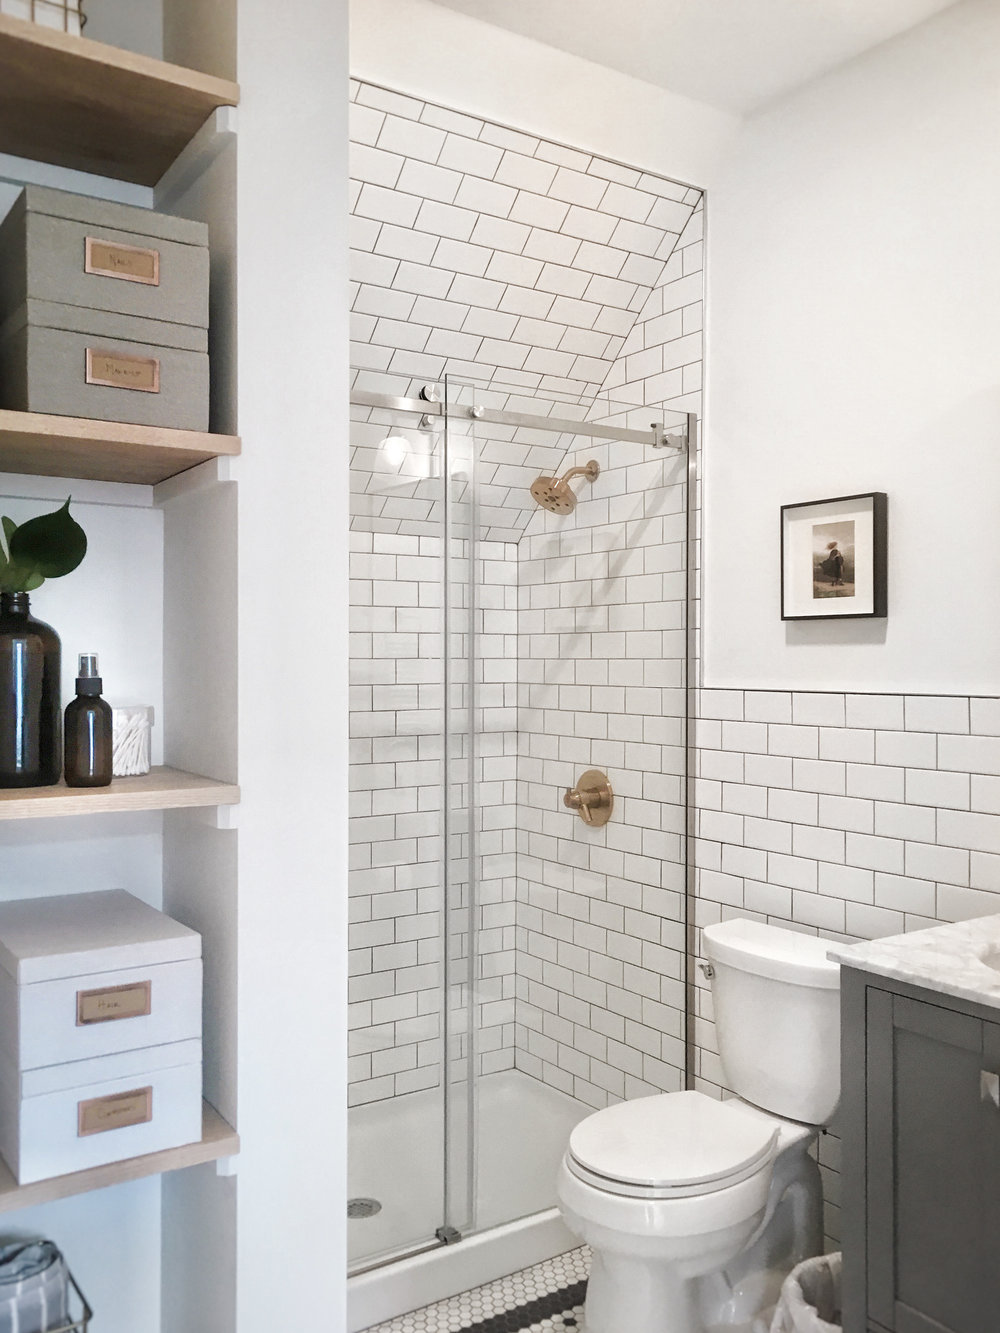 The Modern, Vintage Bathroom — Howlett & Co